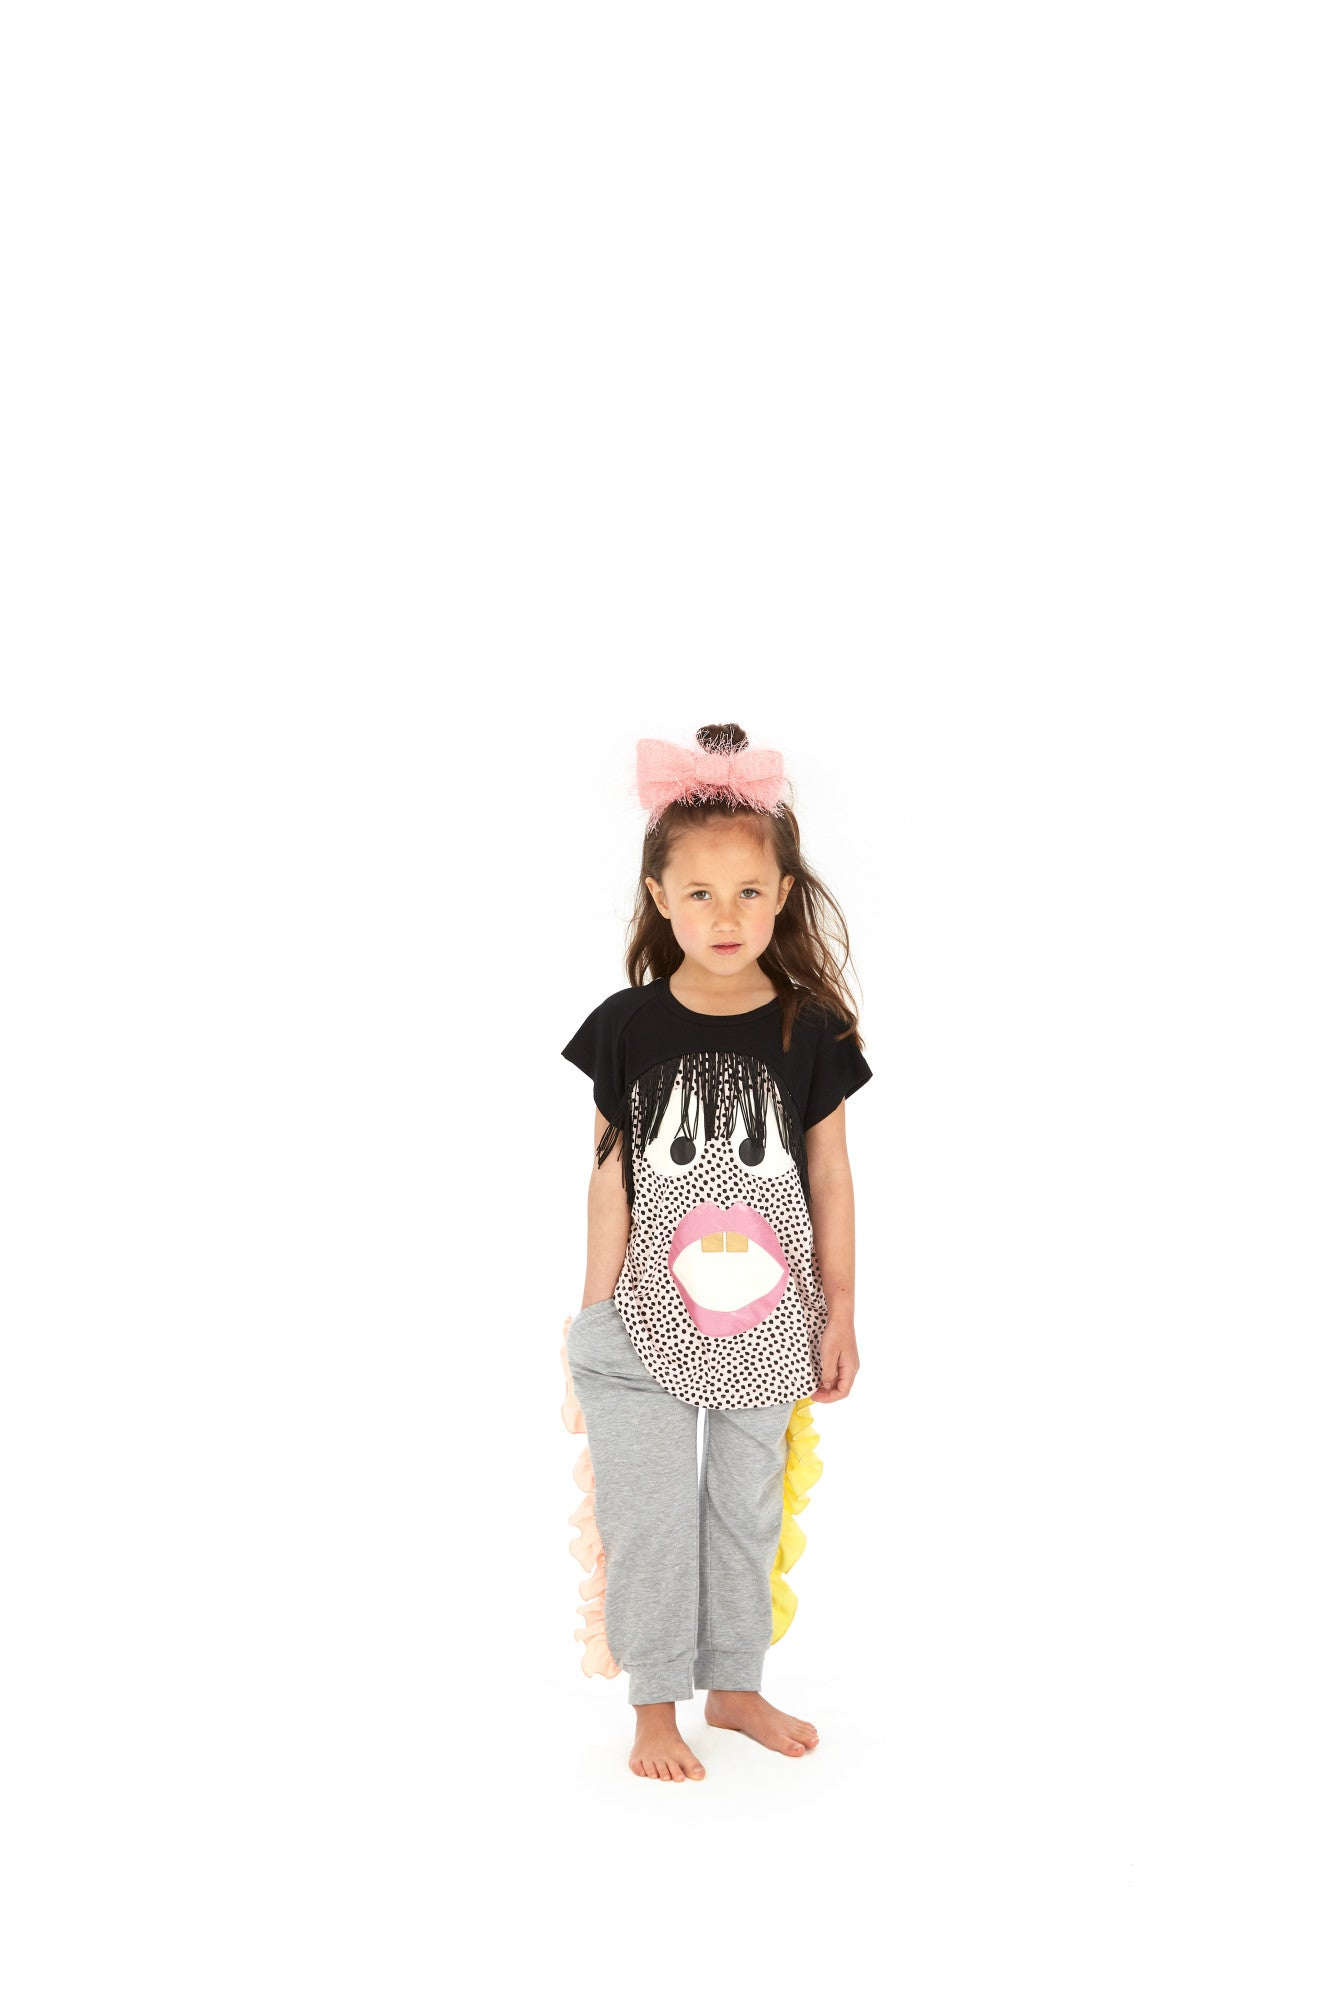 Designer Kids Fashion at Bloom Moda Online Children's Boutique - Wauw Capow by BangBang Aya Pants,  Pants